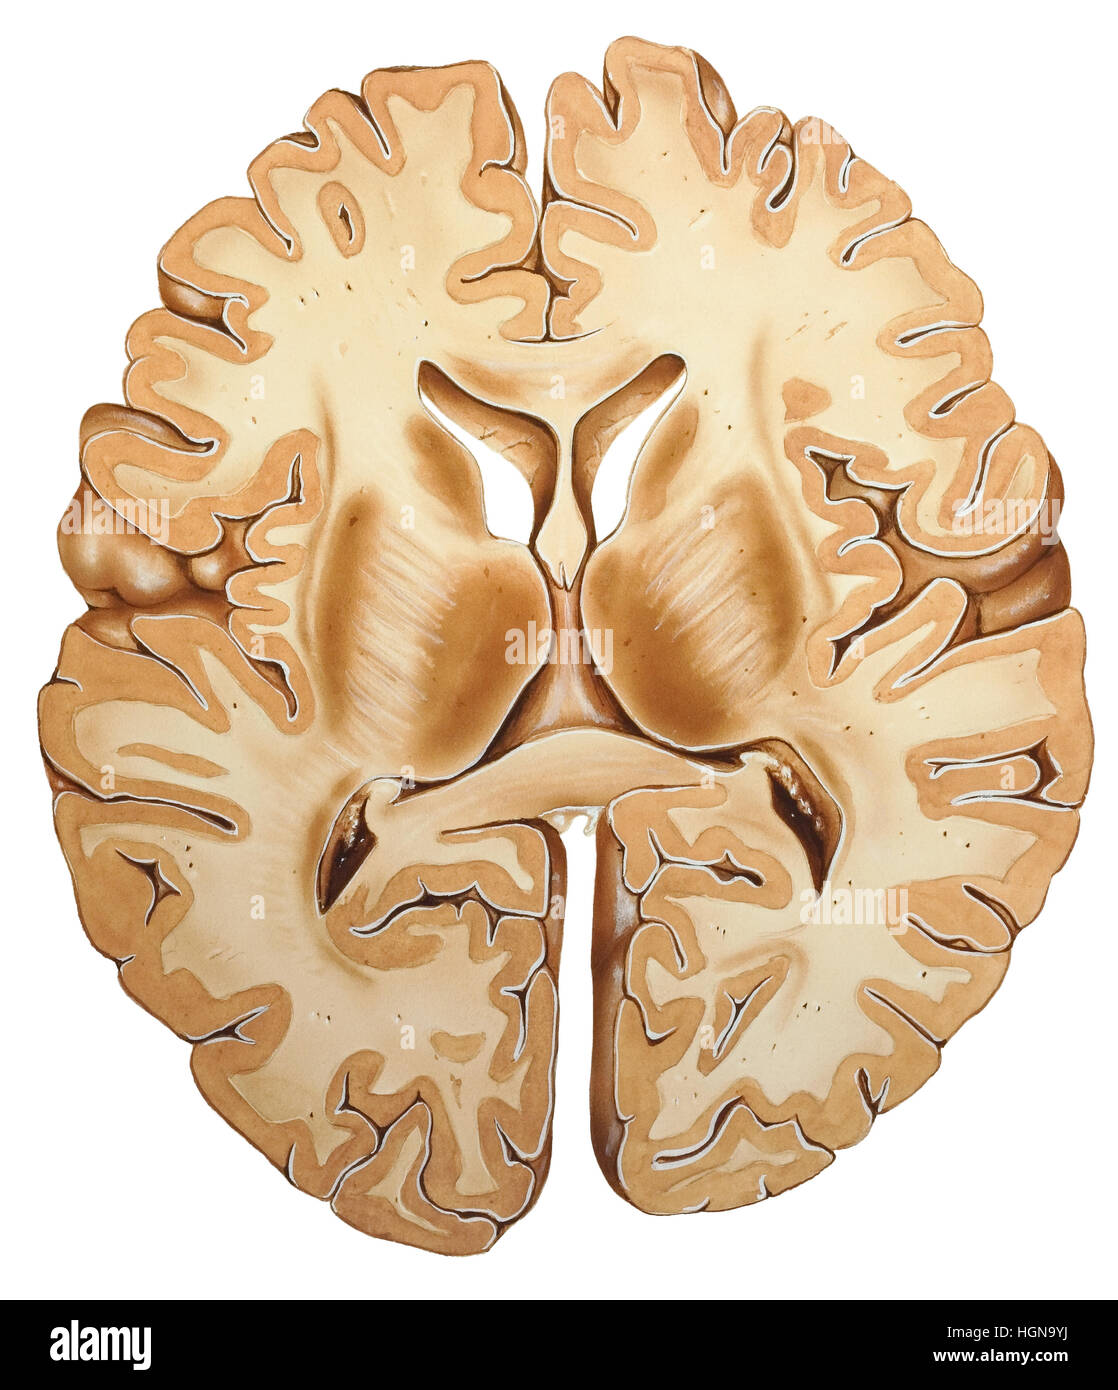 Shown is the cerebral cortex, which is the deeply convoluted surface ...